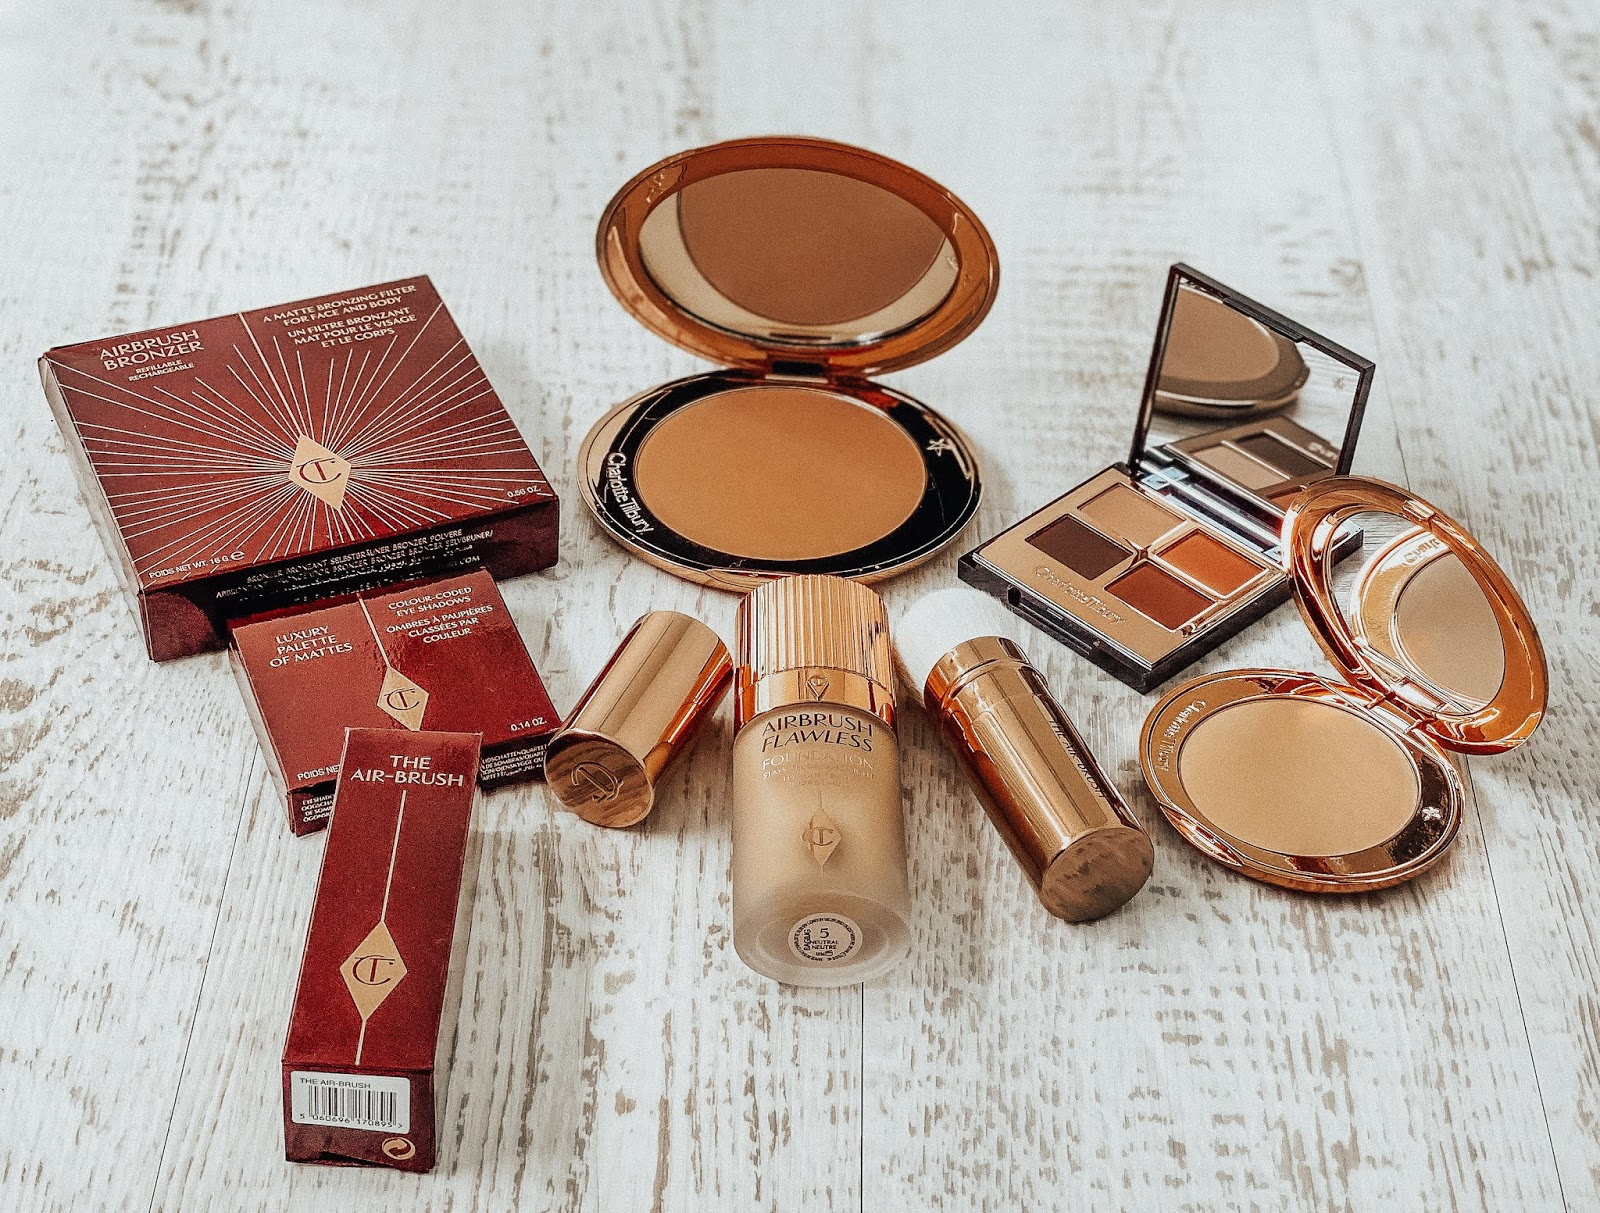 Charlotte Tilbury Airbrush Review